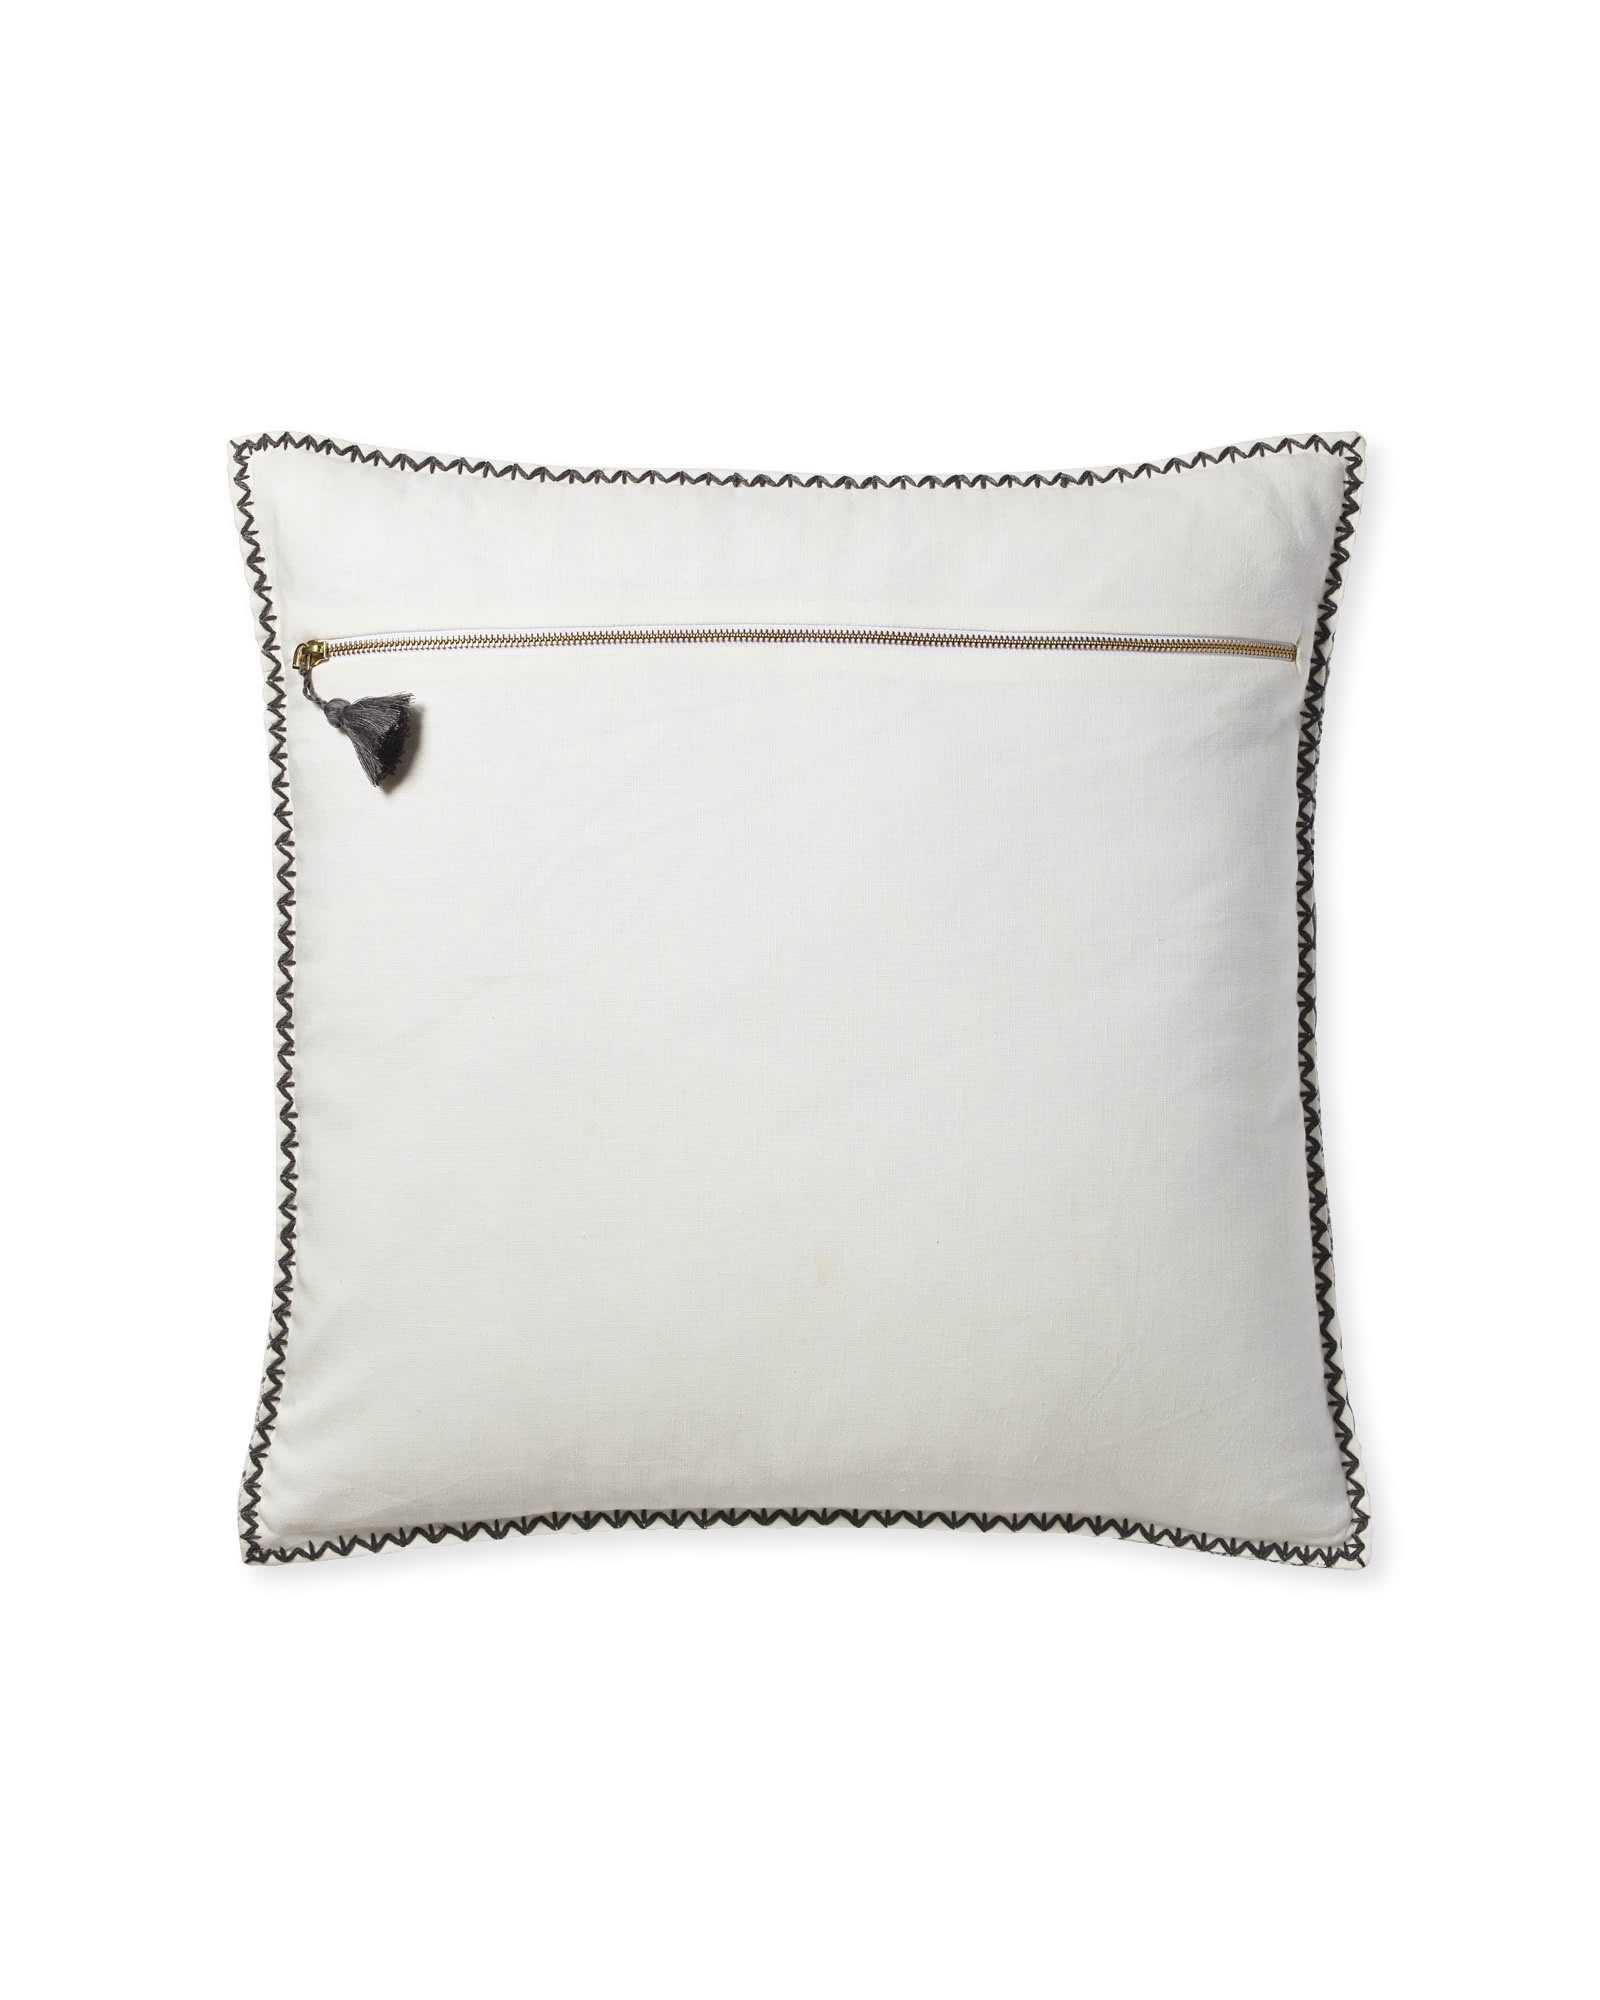 Jamesport Pillow Cover, Fog